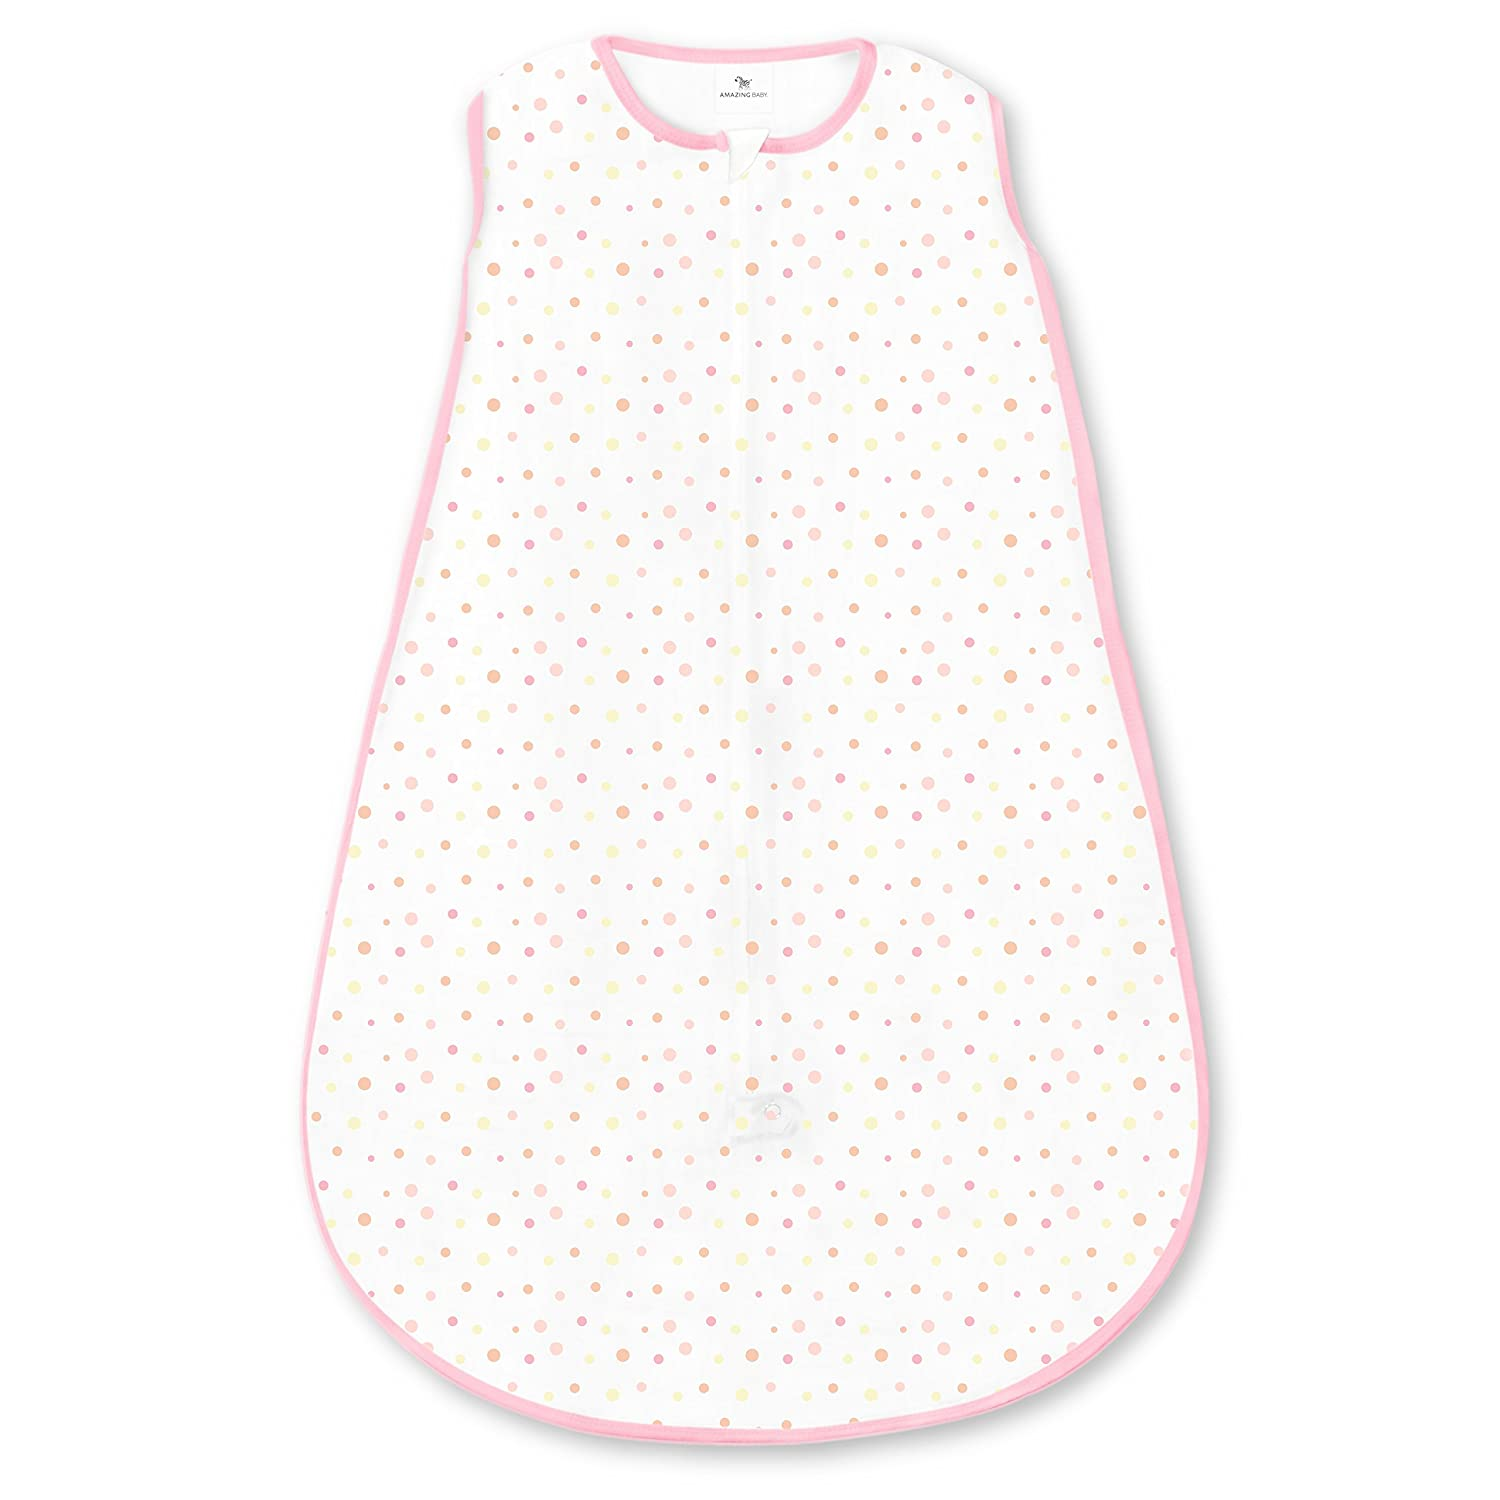 Amazing Baby Microfleece Sleeping Sack with 2-Way Zipper, Playful Dots, Sterling, Large SDA-1115ST-L